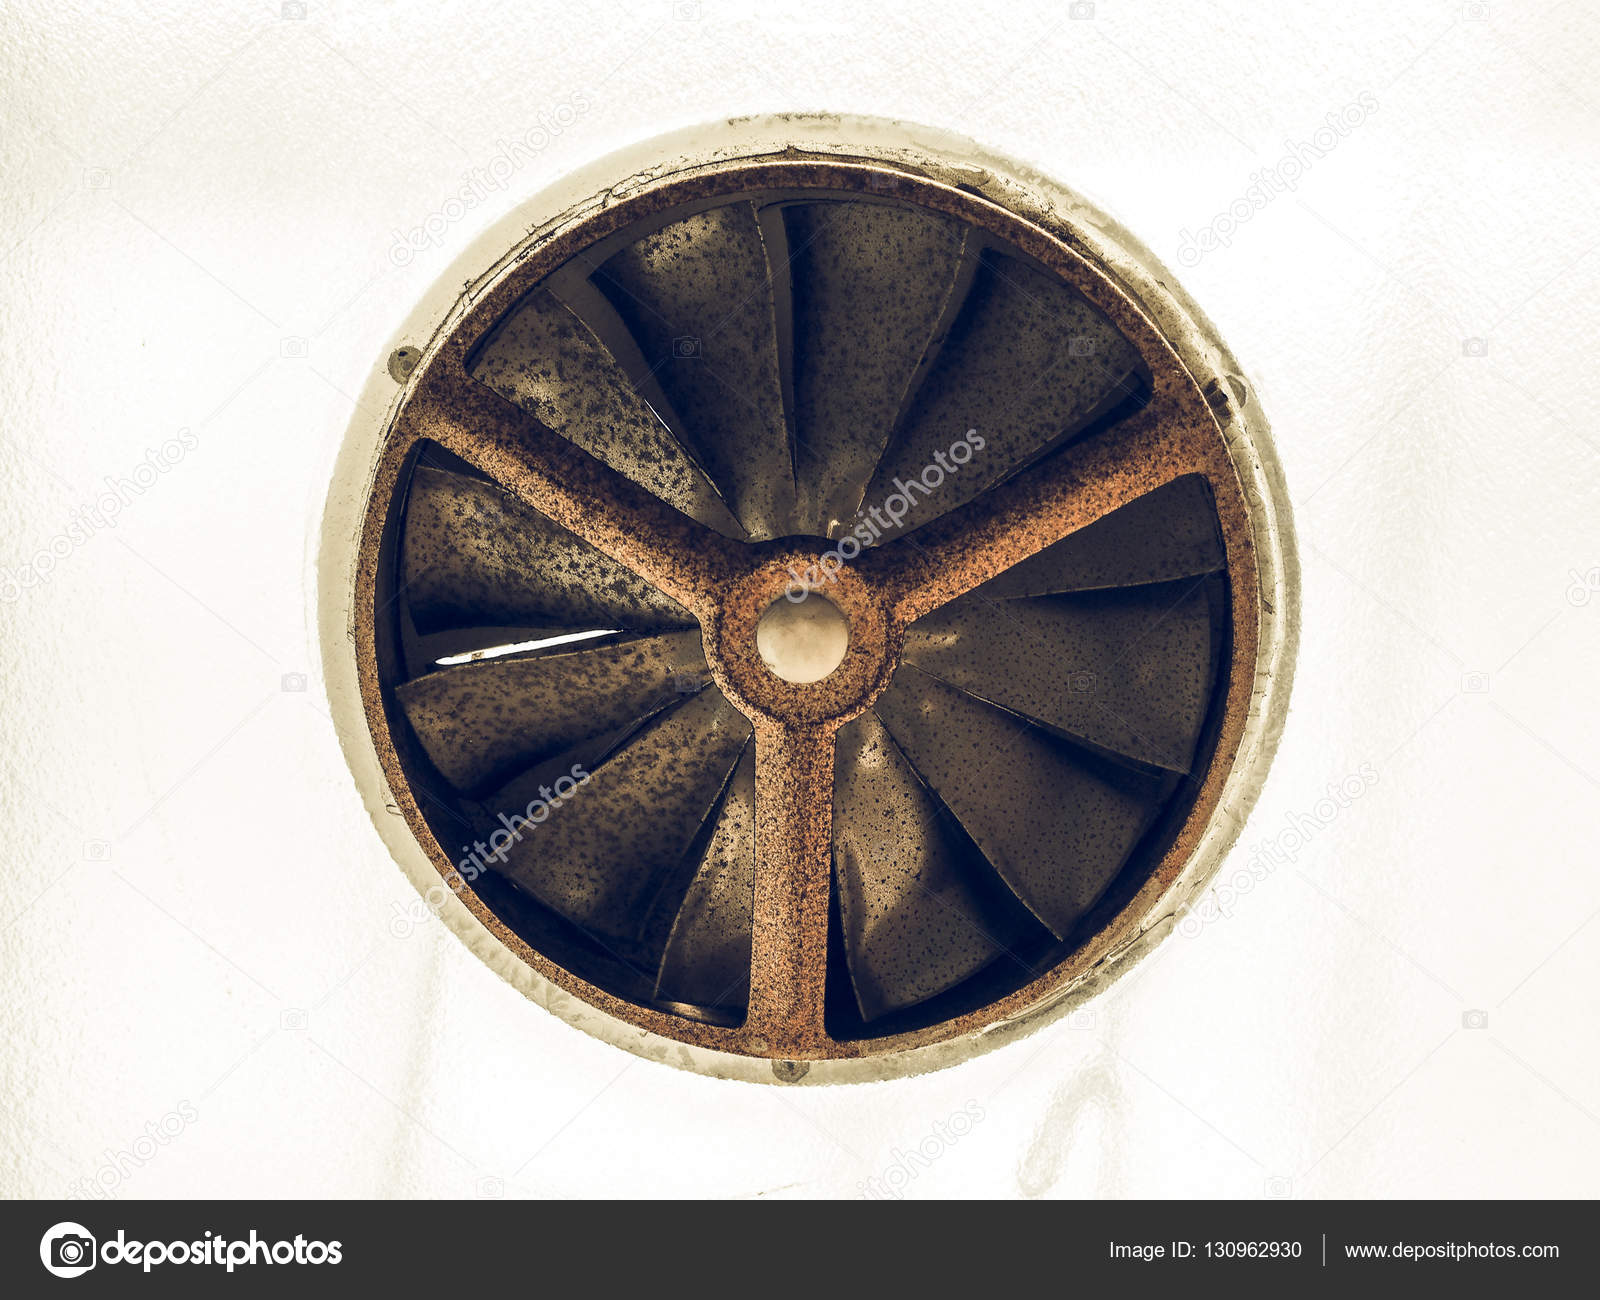 Vintage Looking Fan Vintage Looking Rusty Old Fan Stock Photo Claudiodivizia